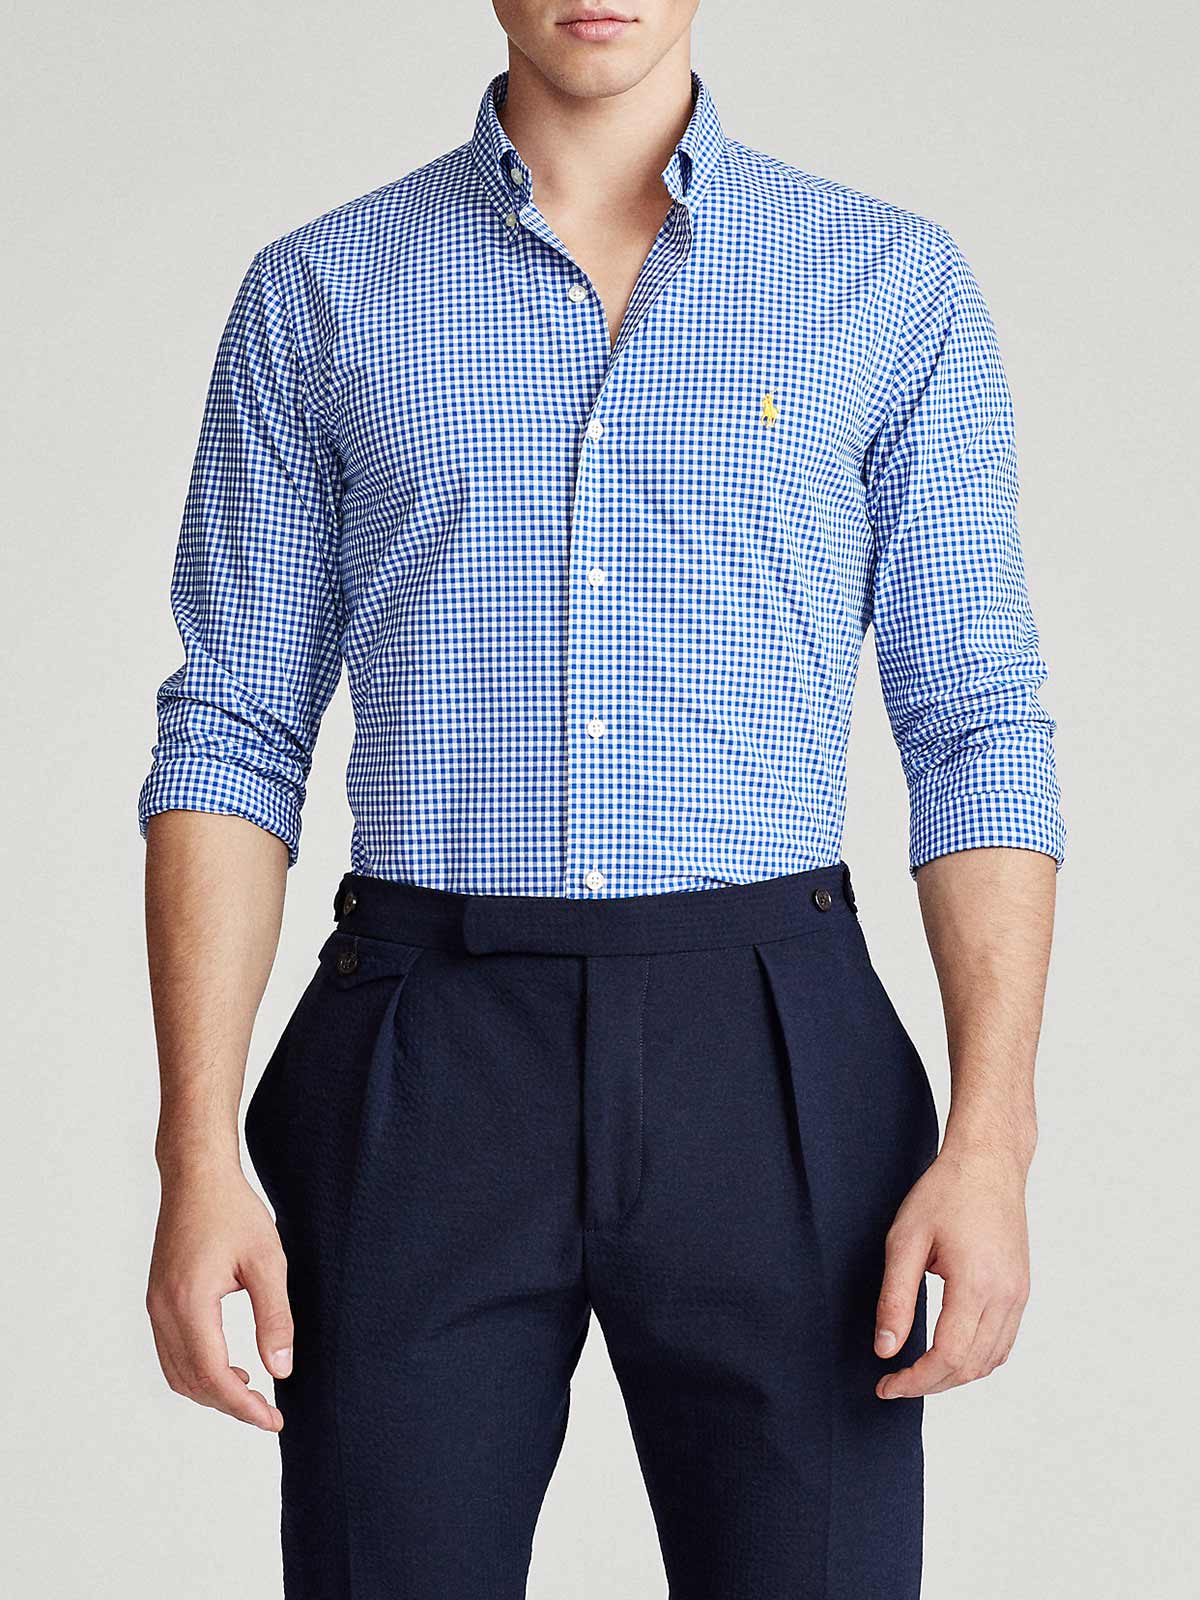 Picture of POLO RALPH LAUREN | Men's Gingham Poplin Shirt